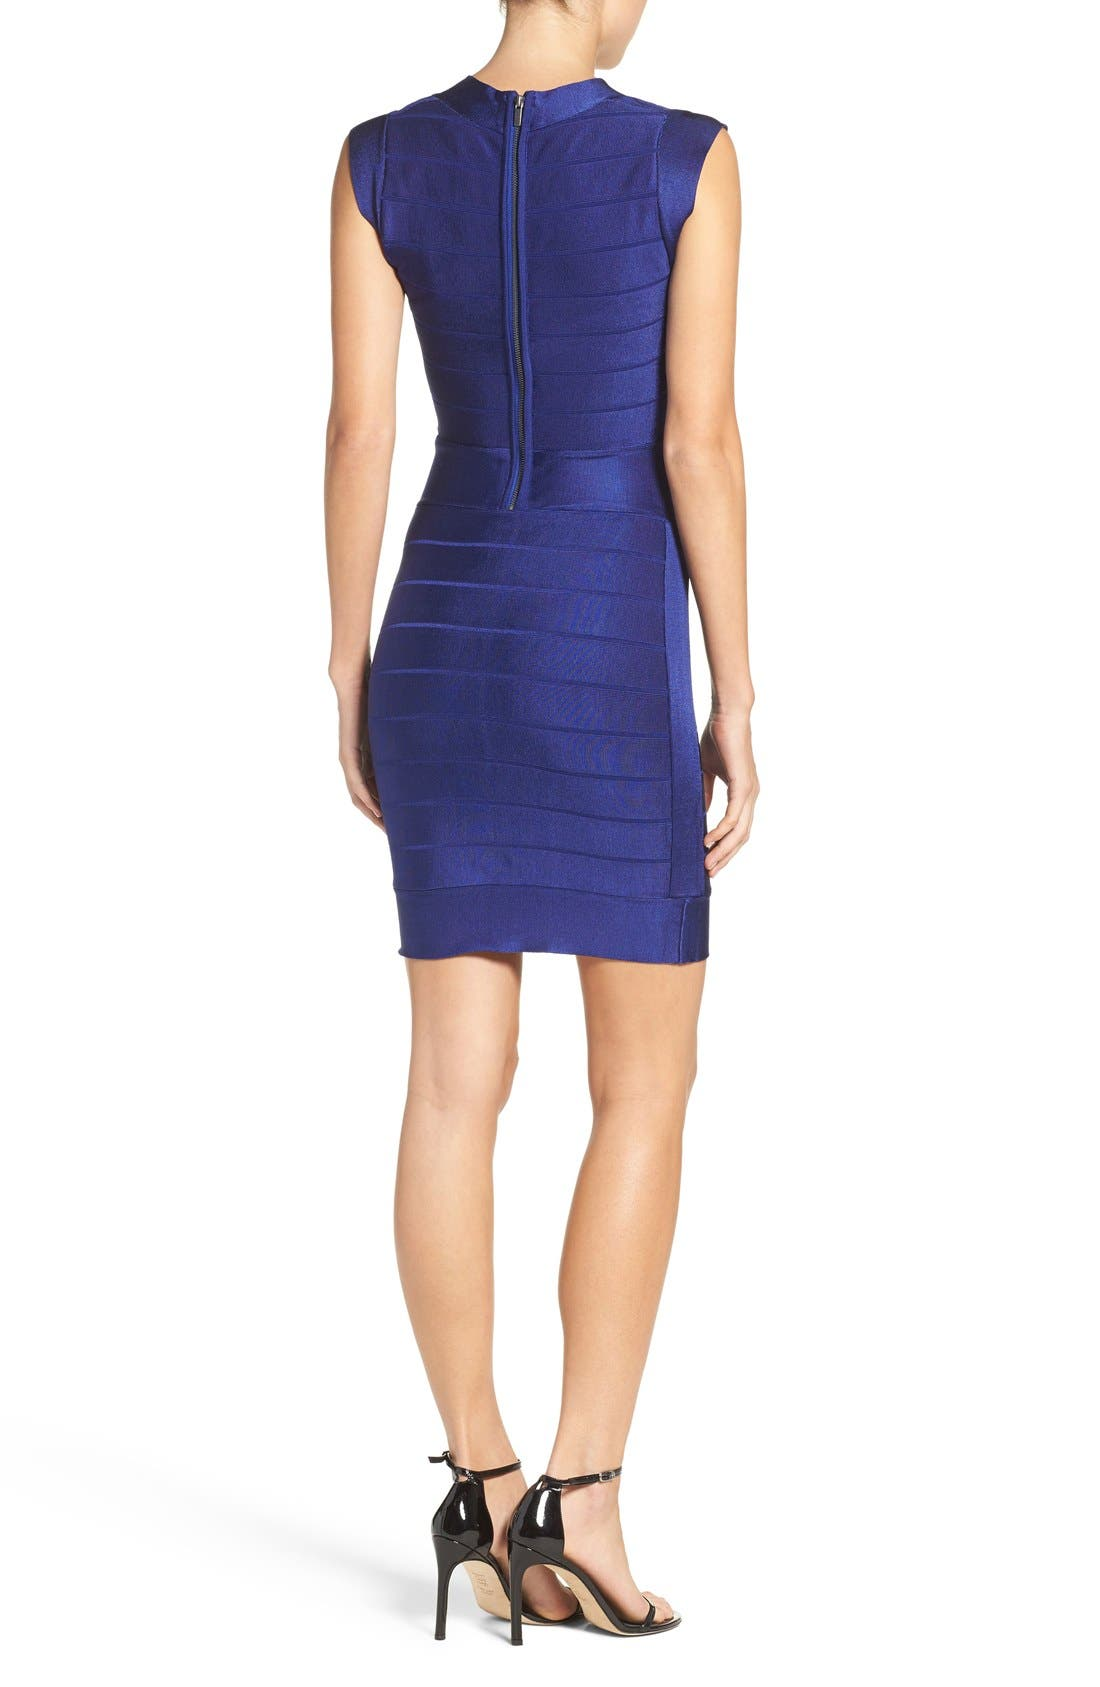 Spotlight Bandage Dress,                             Alternate thumbnail 8, color,                             431